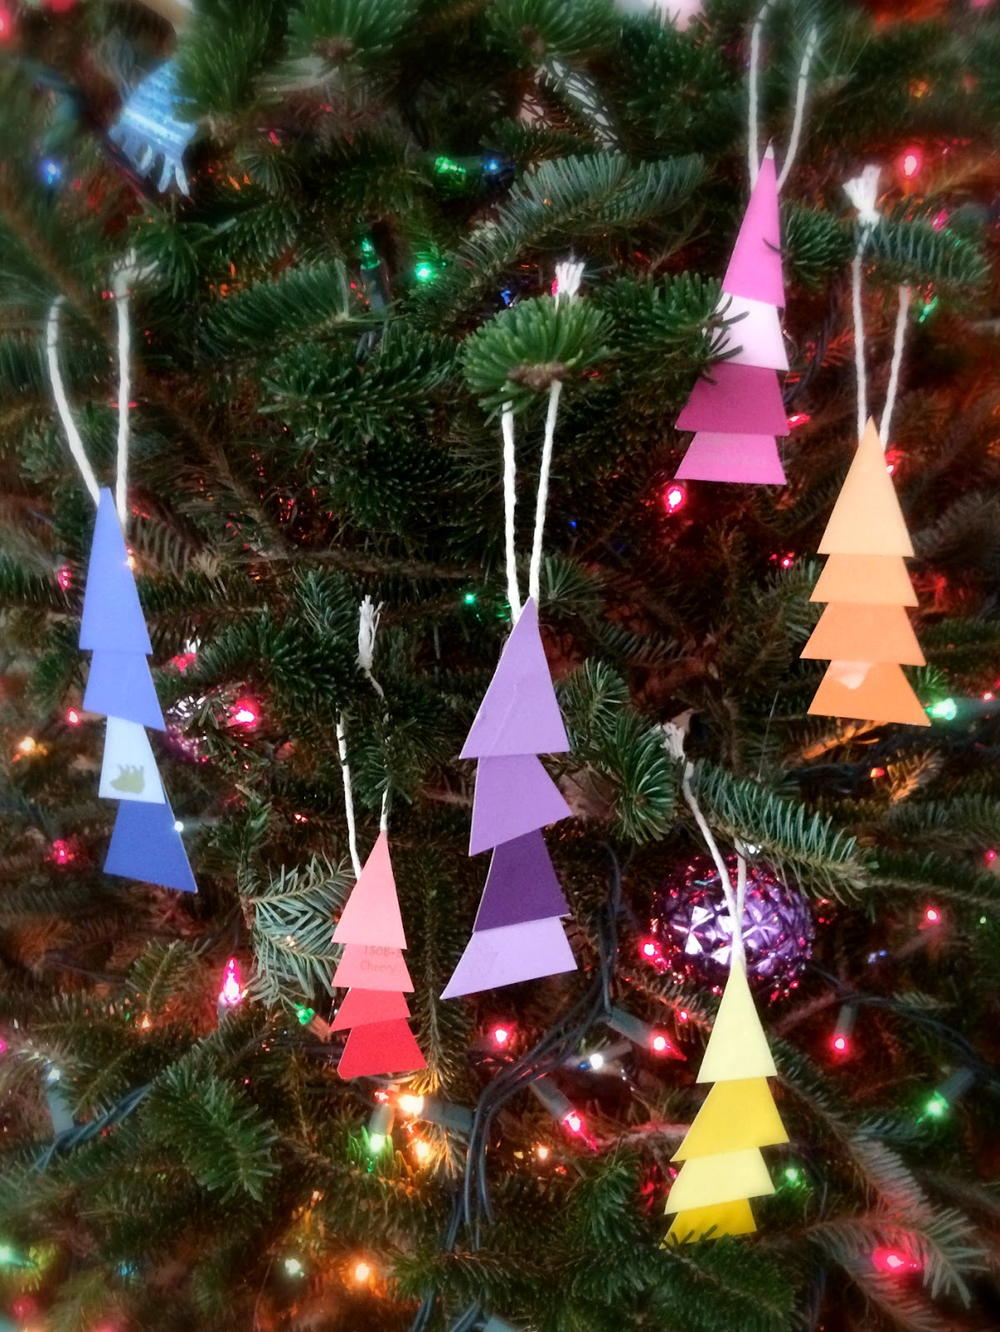 Paint Chip Christmas Tree Ornaments | AllFreeKidsCrafts.com